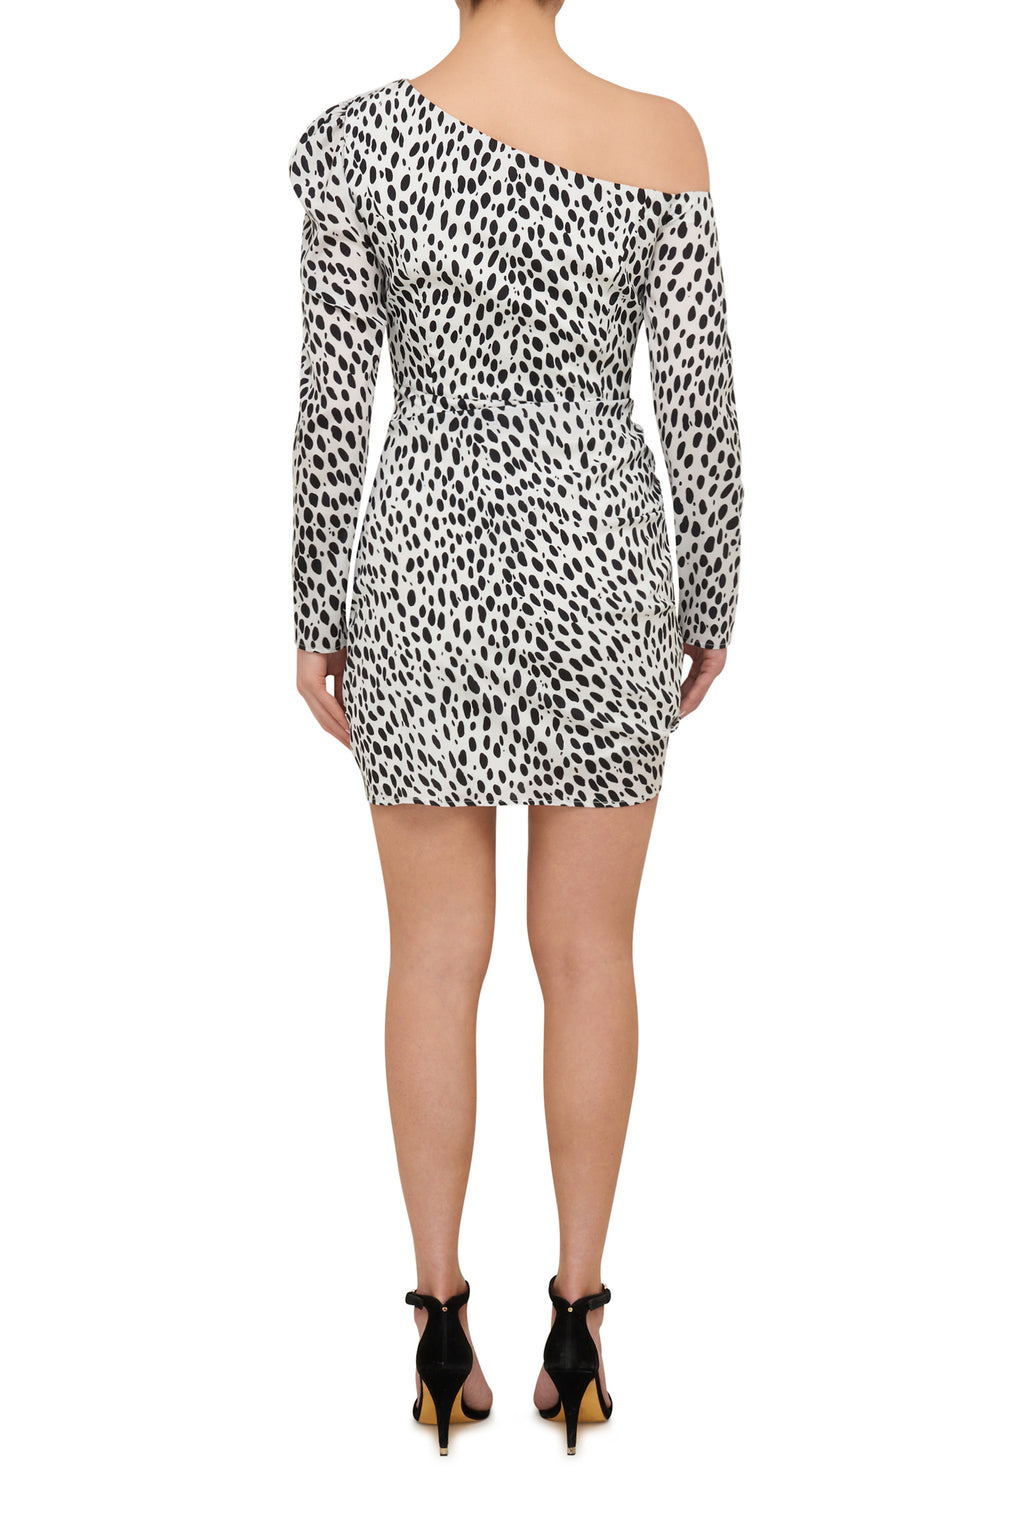 Running Wild Mini Dress - Dalmatian Spot